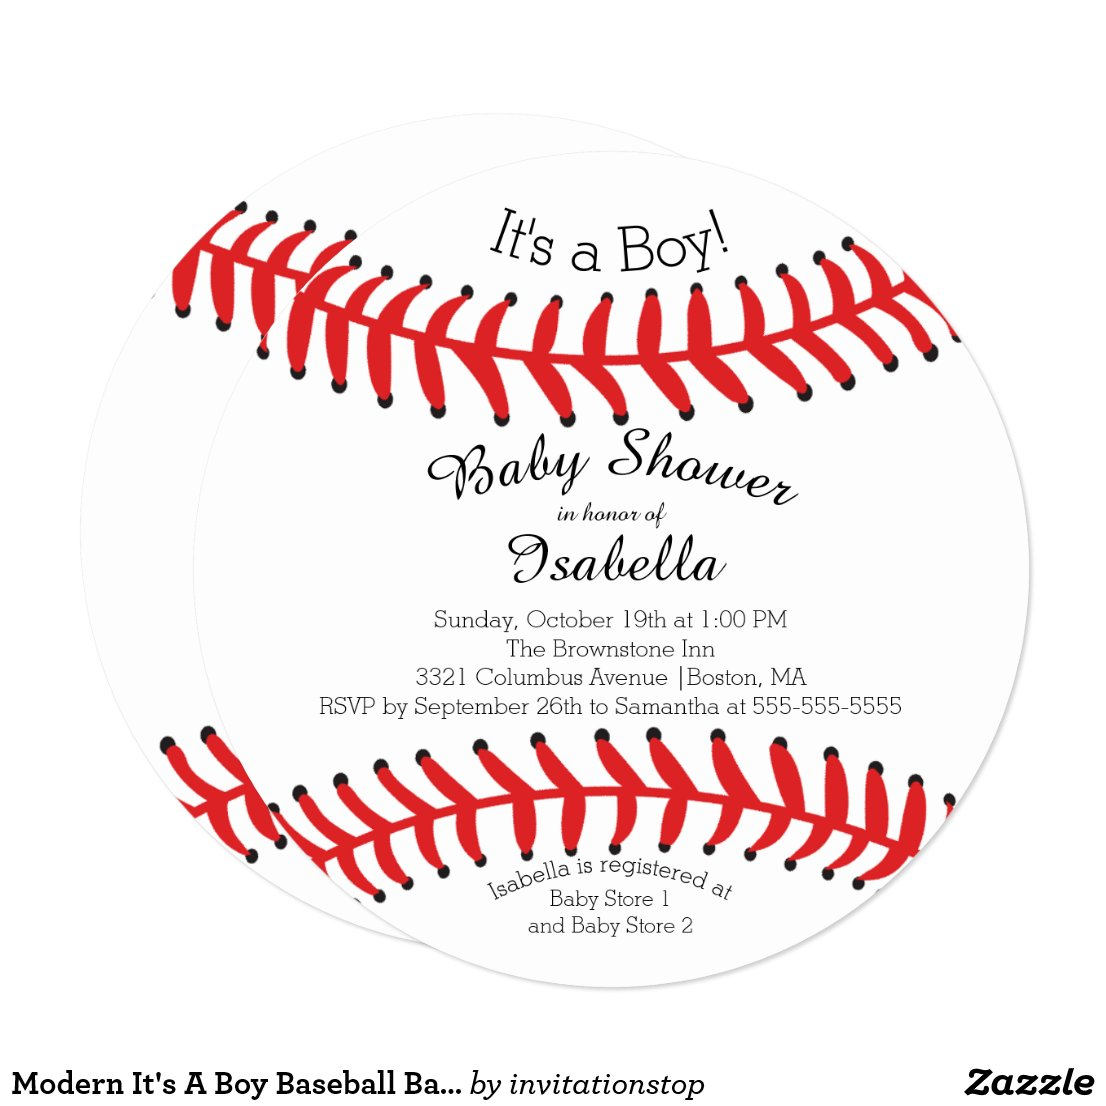 Modern It's A Boy Baseball Baby Shower Invitations